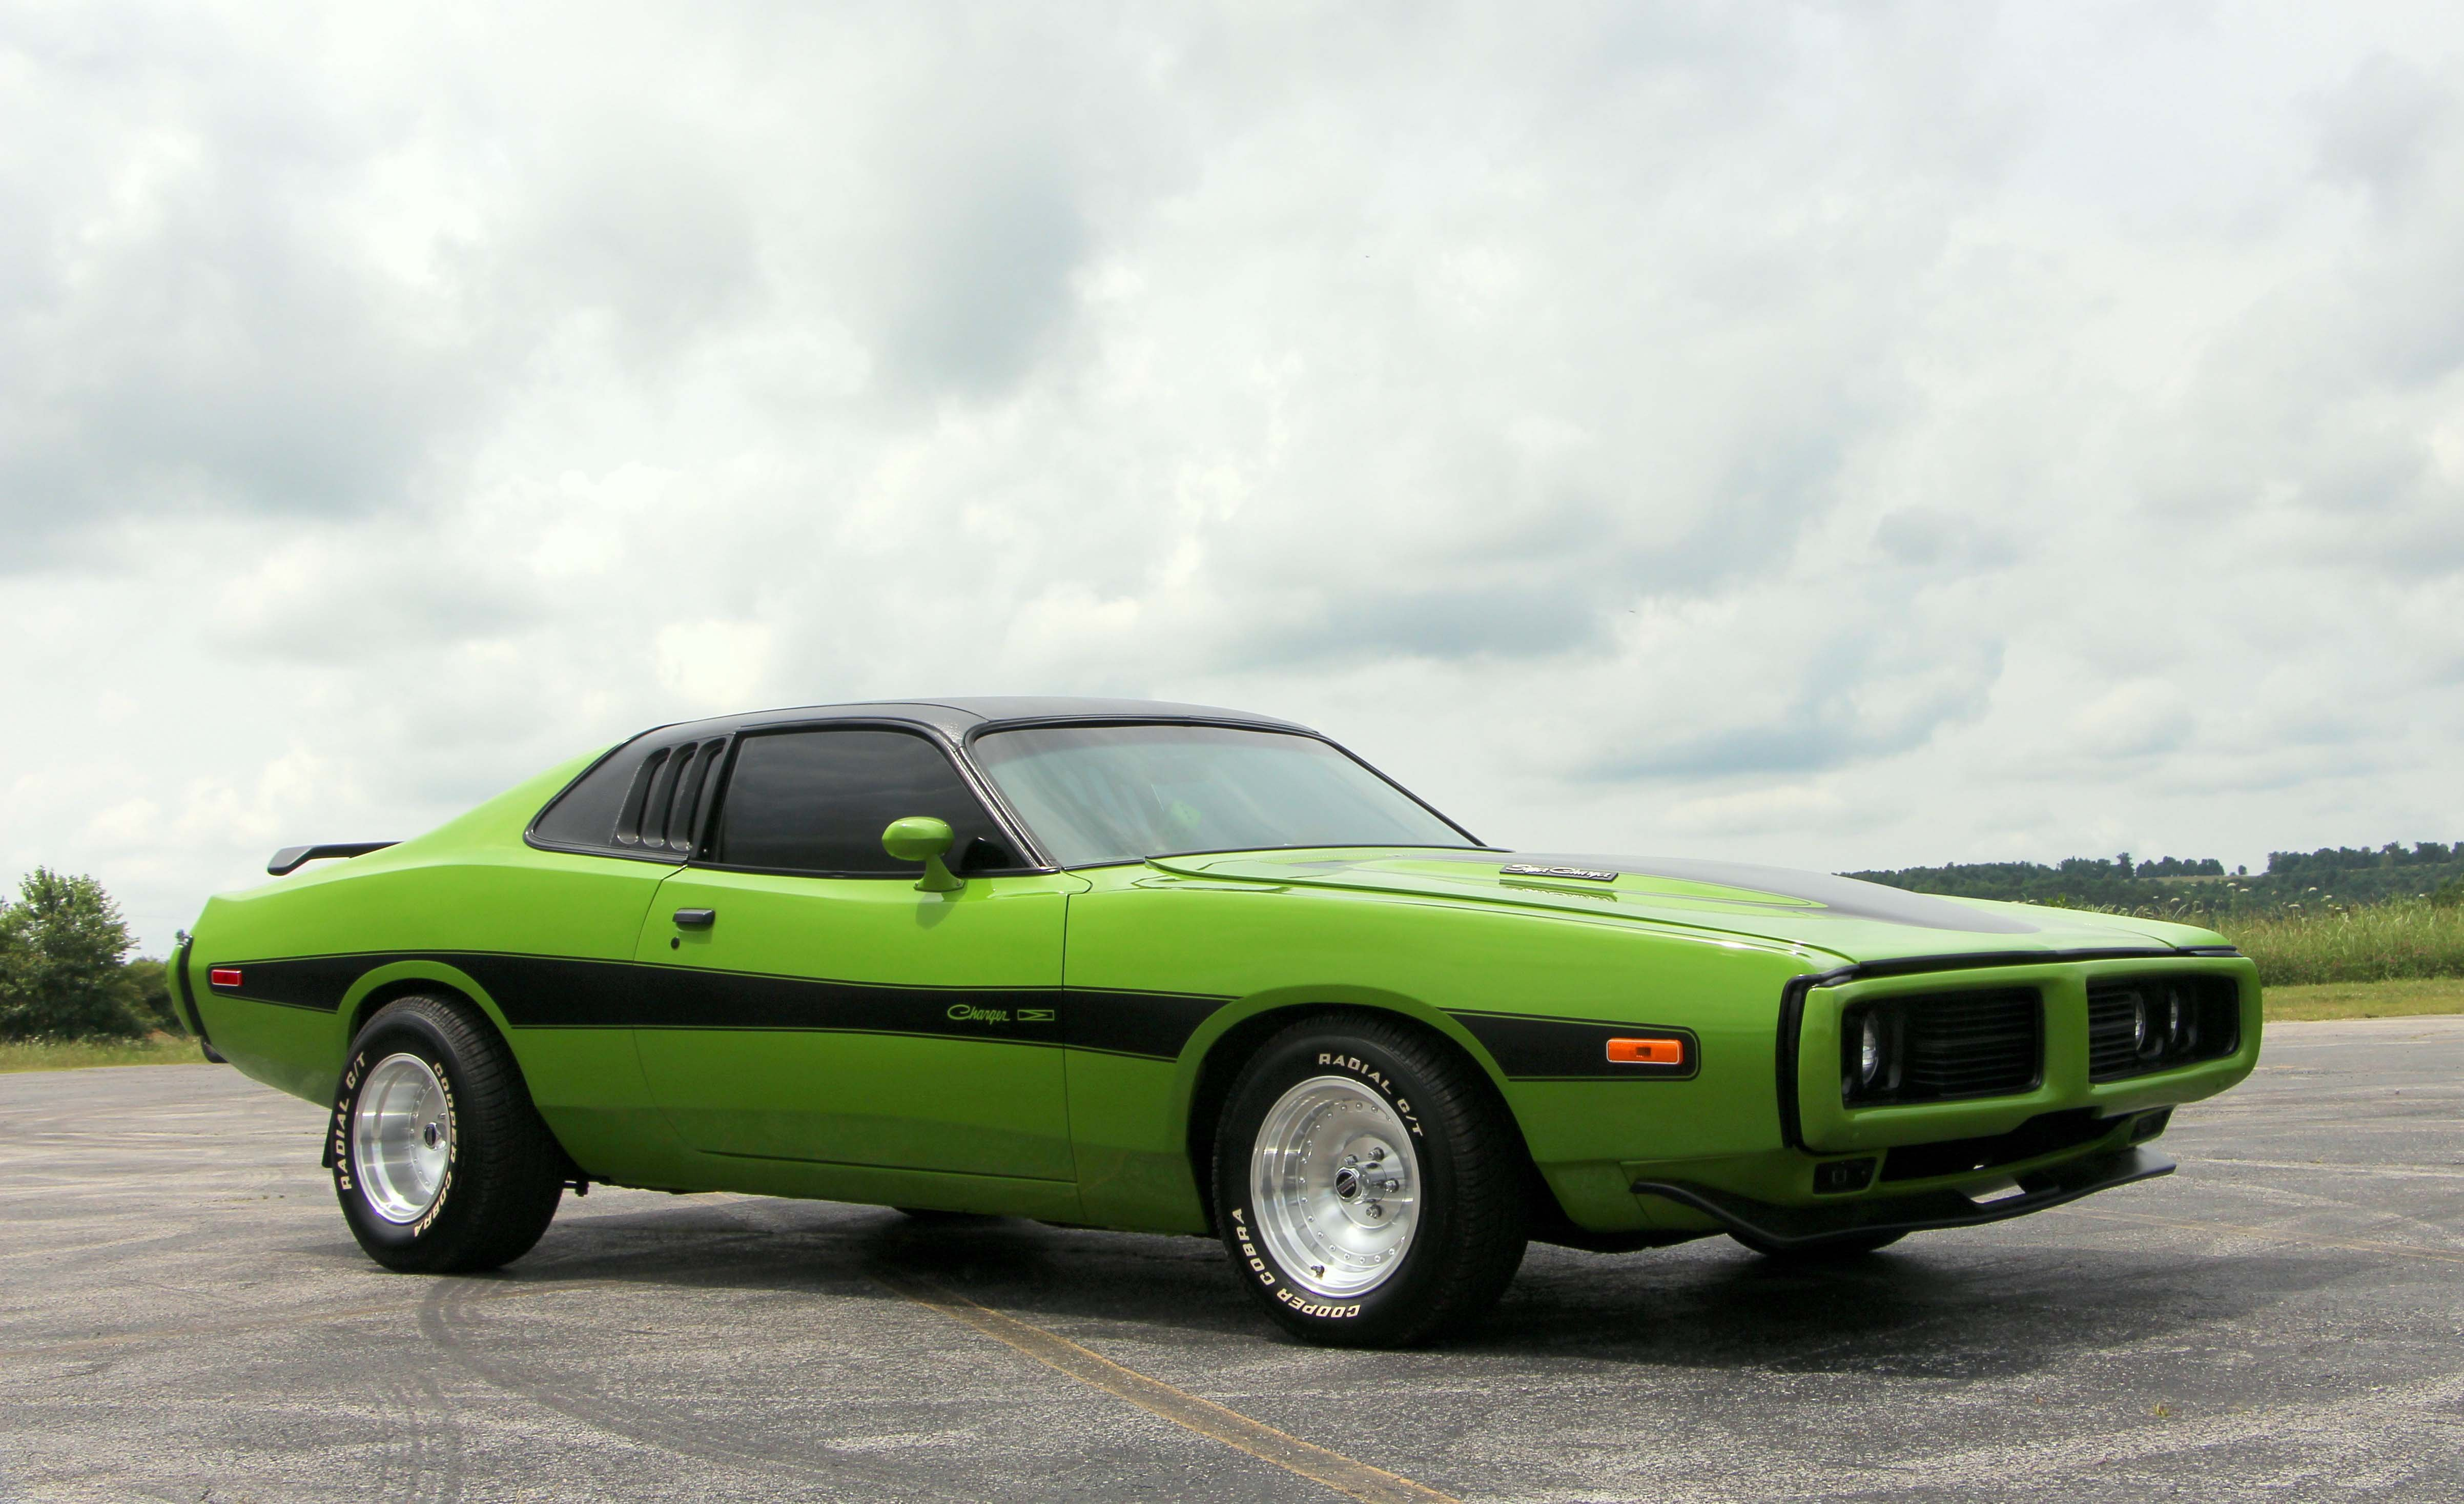 1974 Dodge Charger Muscles Cars Green Wallpaper 4808x2934 1019012 Wallpaperup